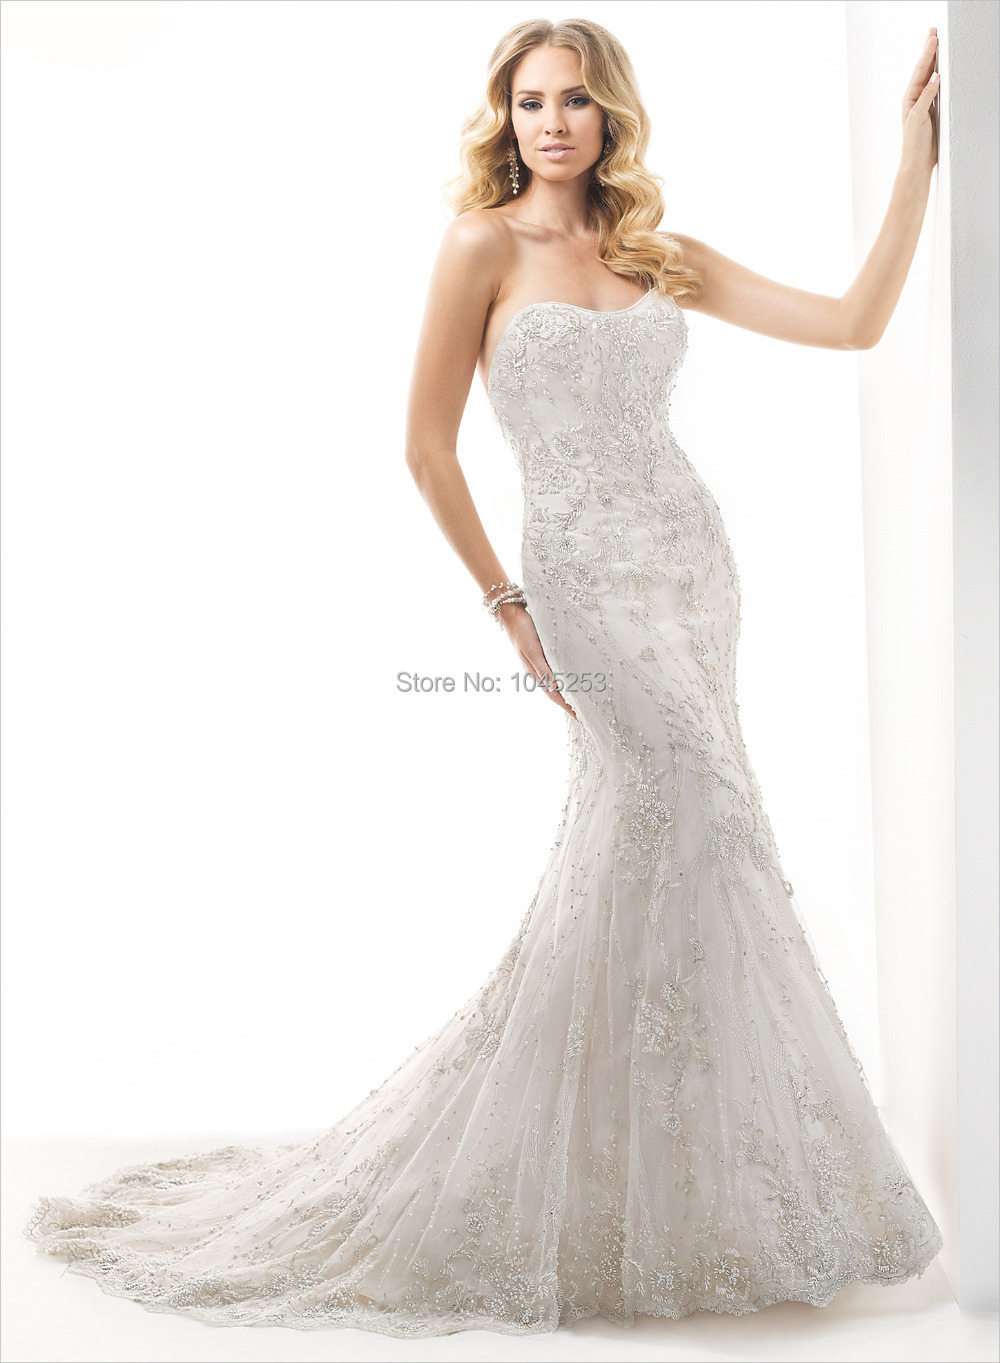 71b668261fe Get Quotations · New Arrive 2015 sexy fashion mermaid wedding dress Lace  high atmospheric sleeveless draped on file wedding